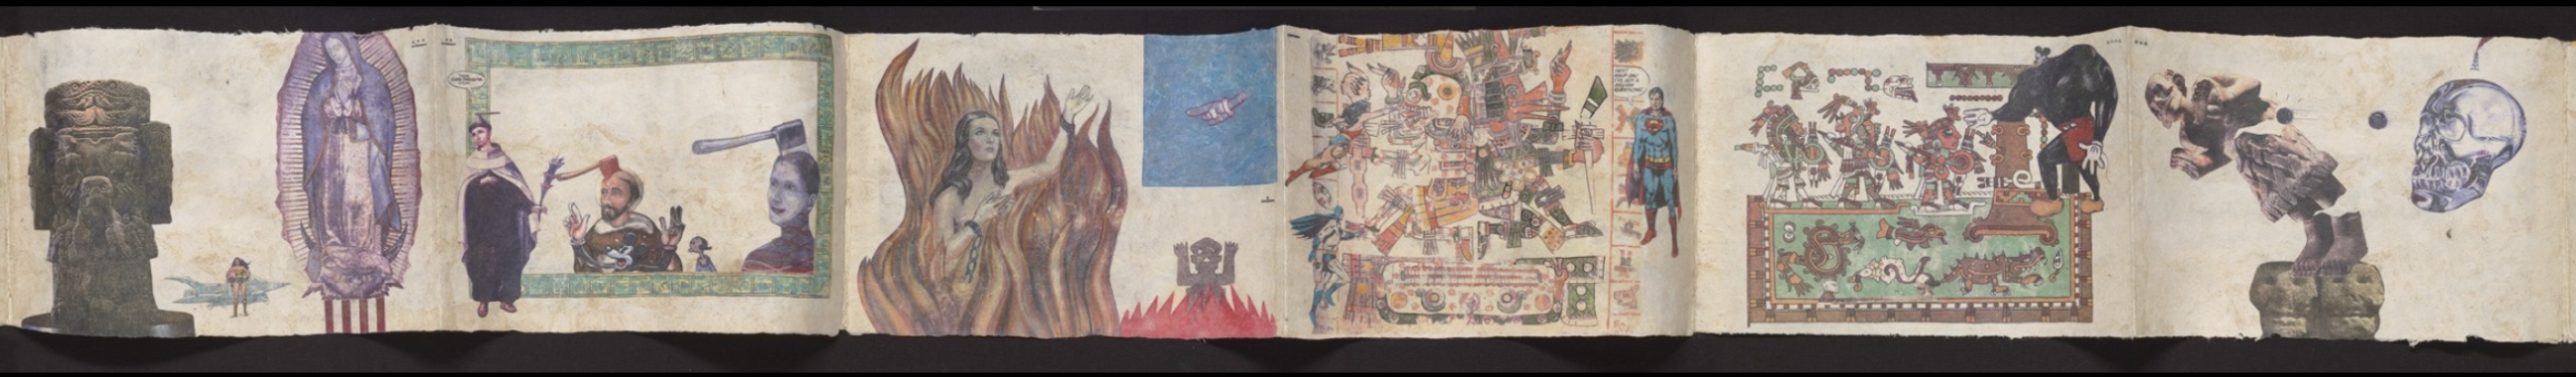 Segment of Tales from the Conquest/Codex by Enrique Chagoya